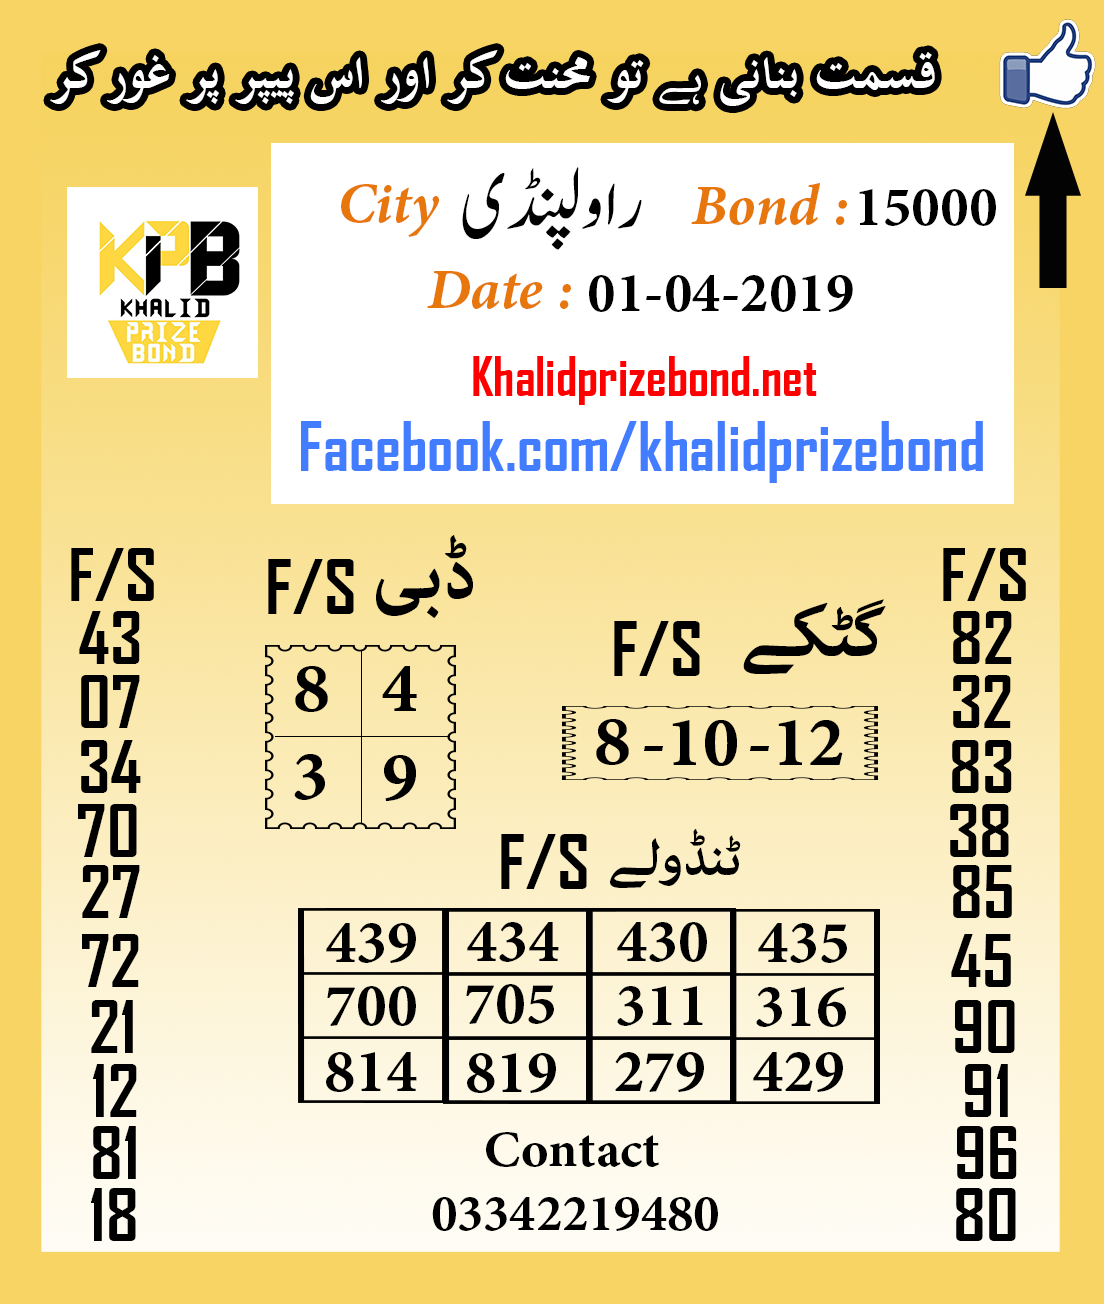 Prize Bond 15000 City Rawalpindi F/S Akray And Tandolay VIP